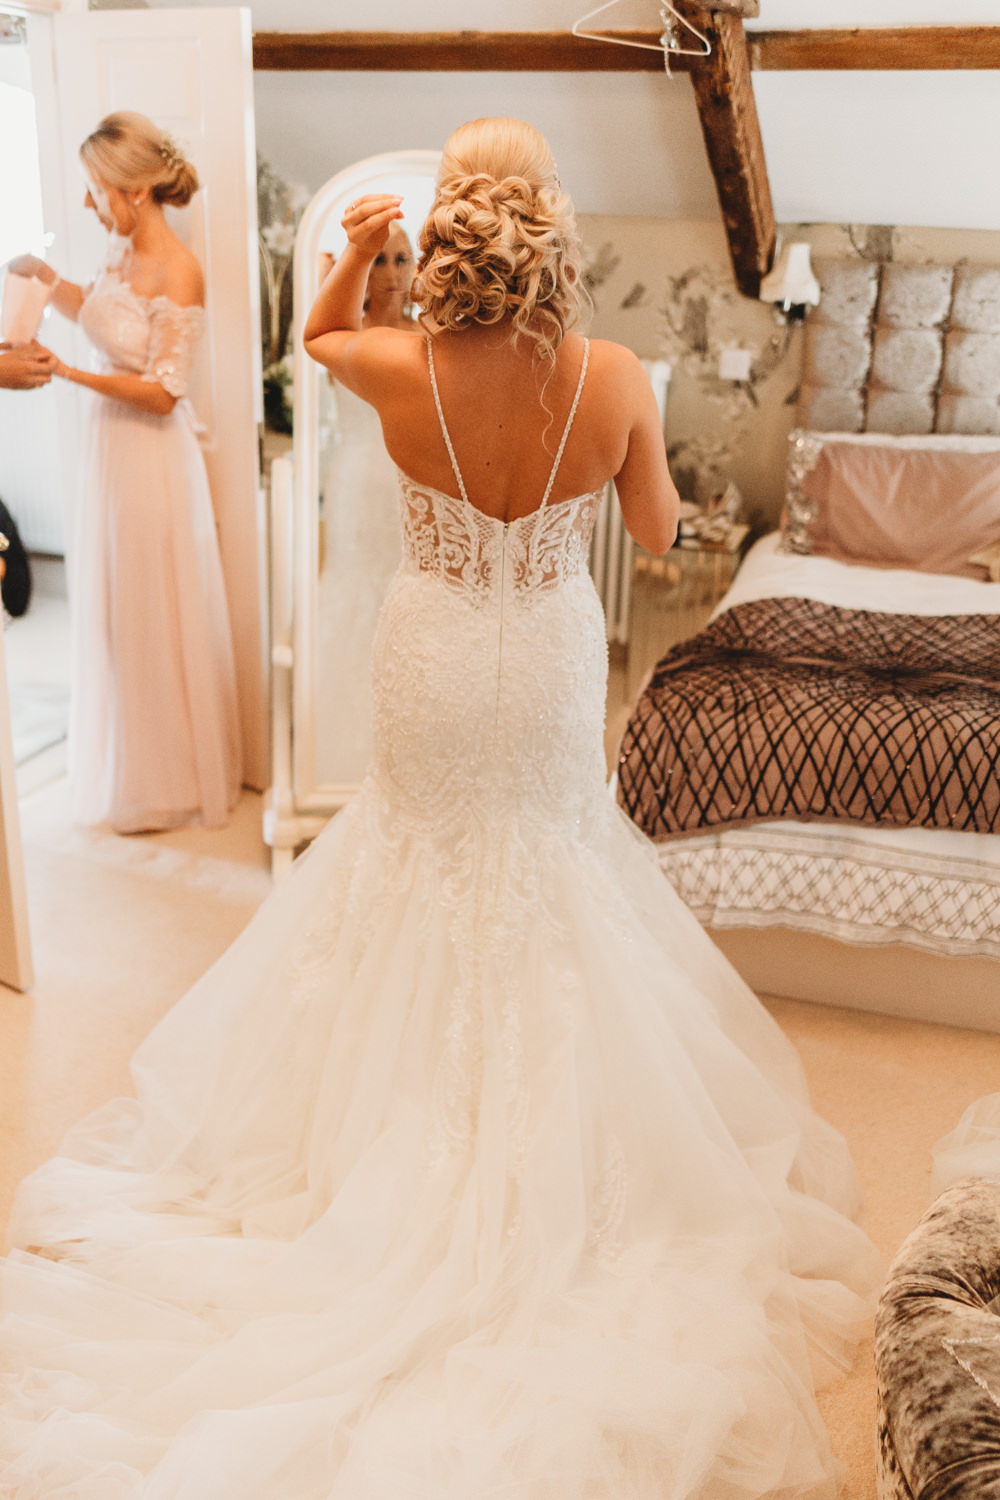 Dress Gown Bride Bridal Kenneth Winston Fishtail Fit Flare Straps Crug Glas Country House Wedding Simon Murray Images